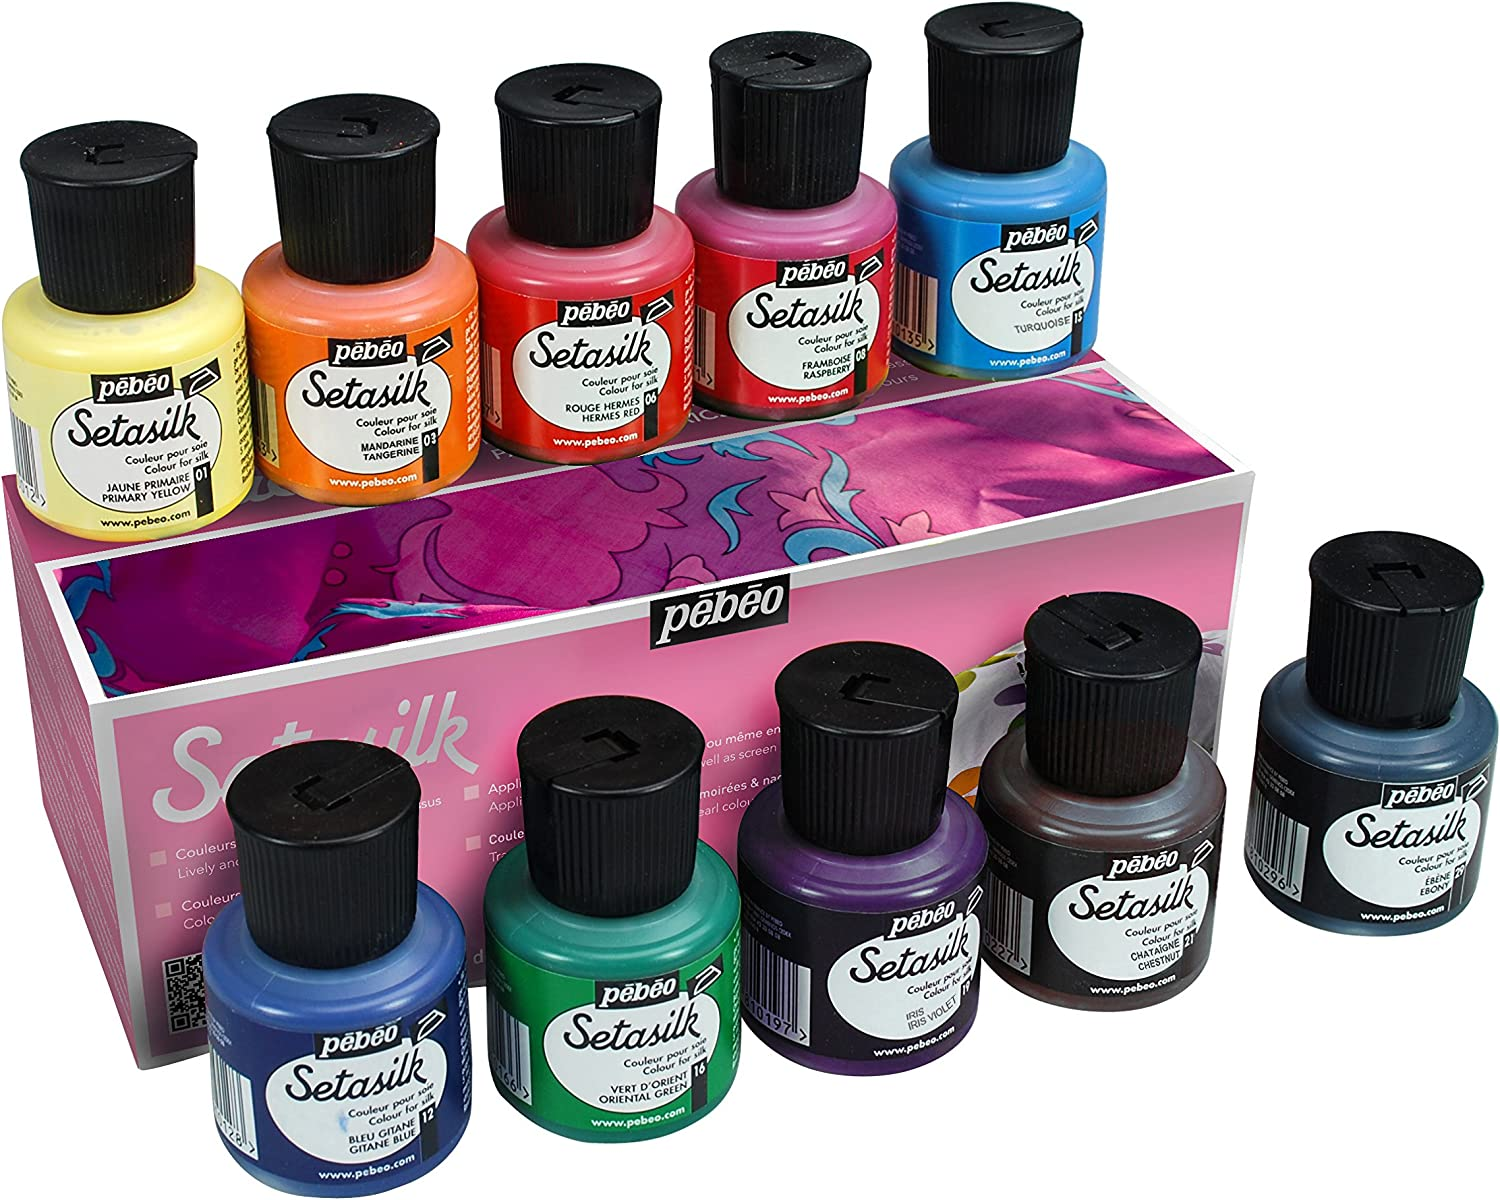 PEBEO 269000 Setasilk Silk Painting Max 60% OFF Set Box 10 of Fixed price for sale Ass Cardboard